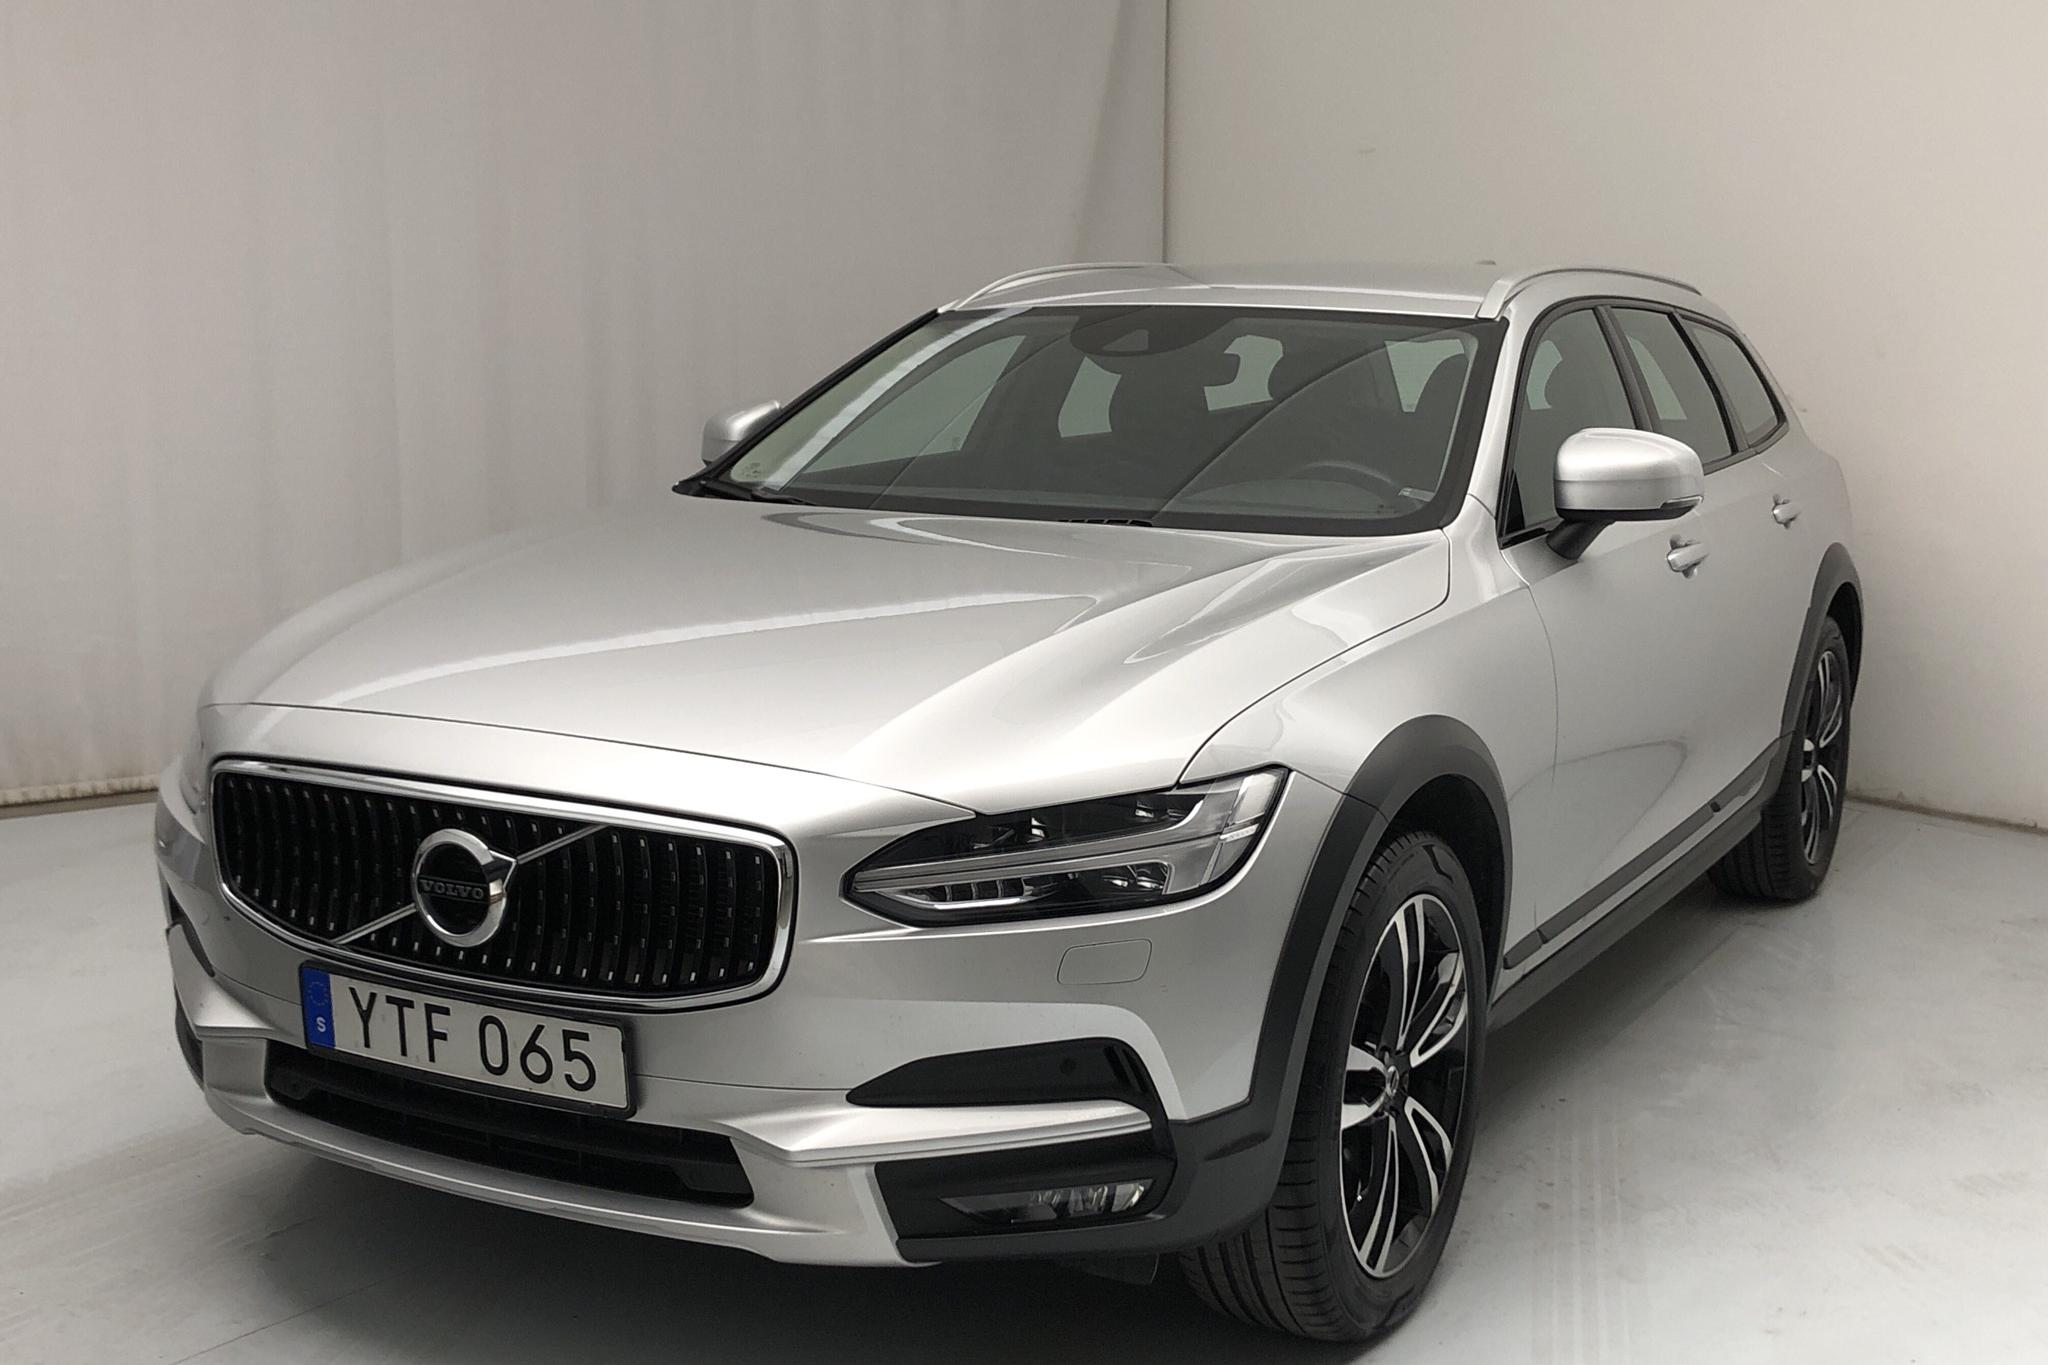 Volvo V90 T5 Cross Country AWD (254hk) - 62 270 km - Automatic - silver - 2018